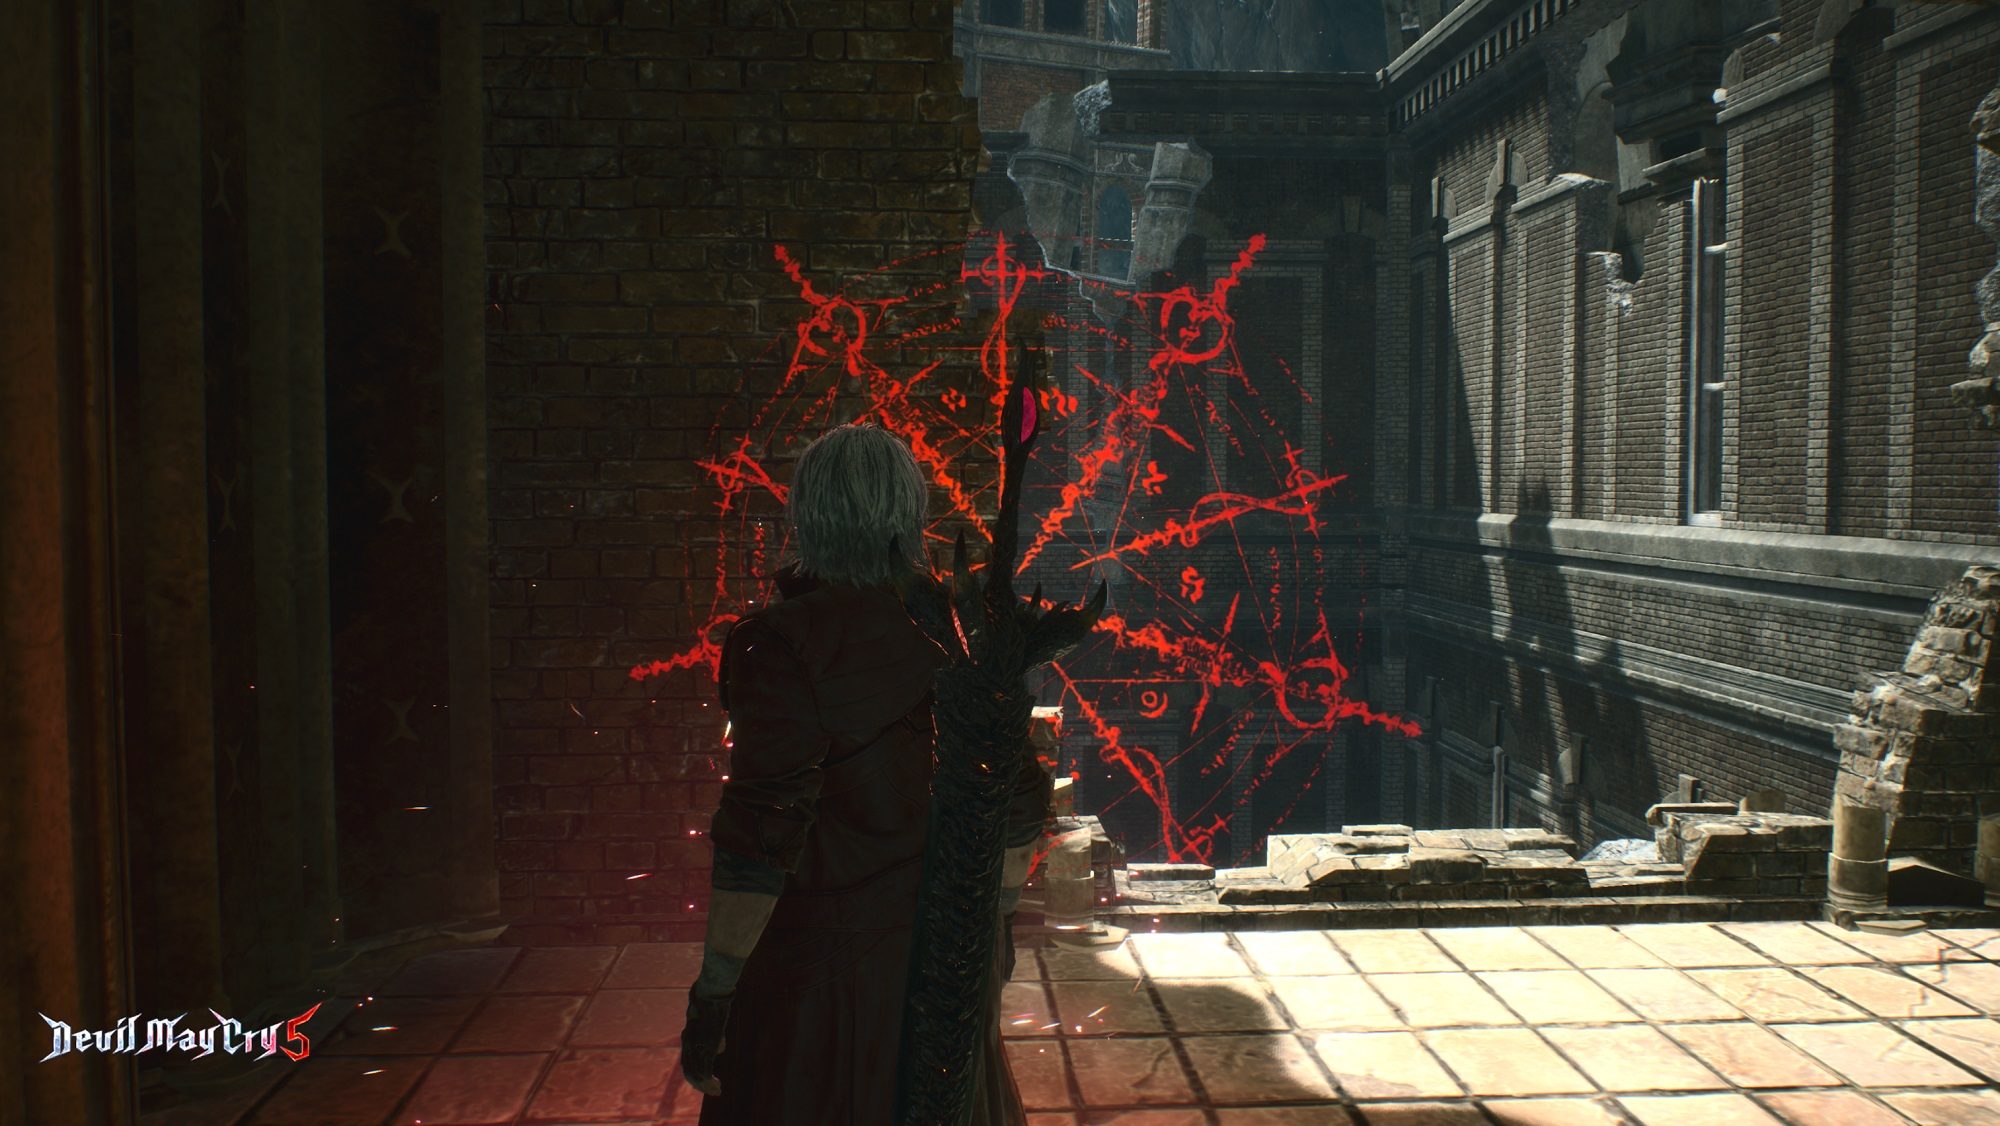 Devil May Cry 5 Secret Missions - find and complete all DMC 5 Secret